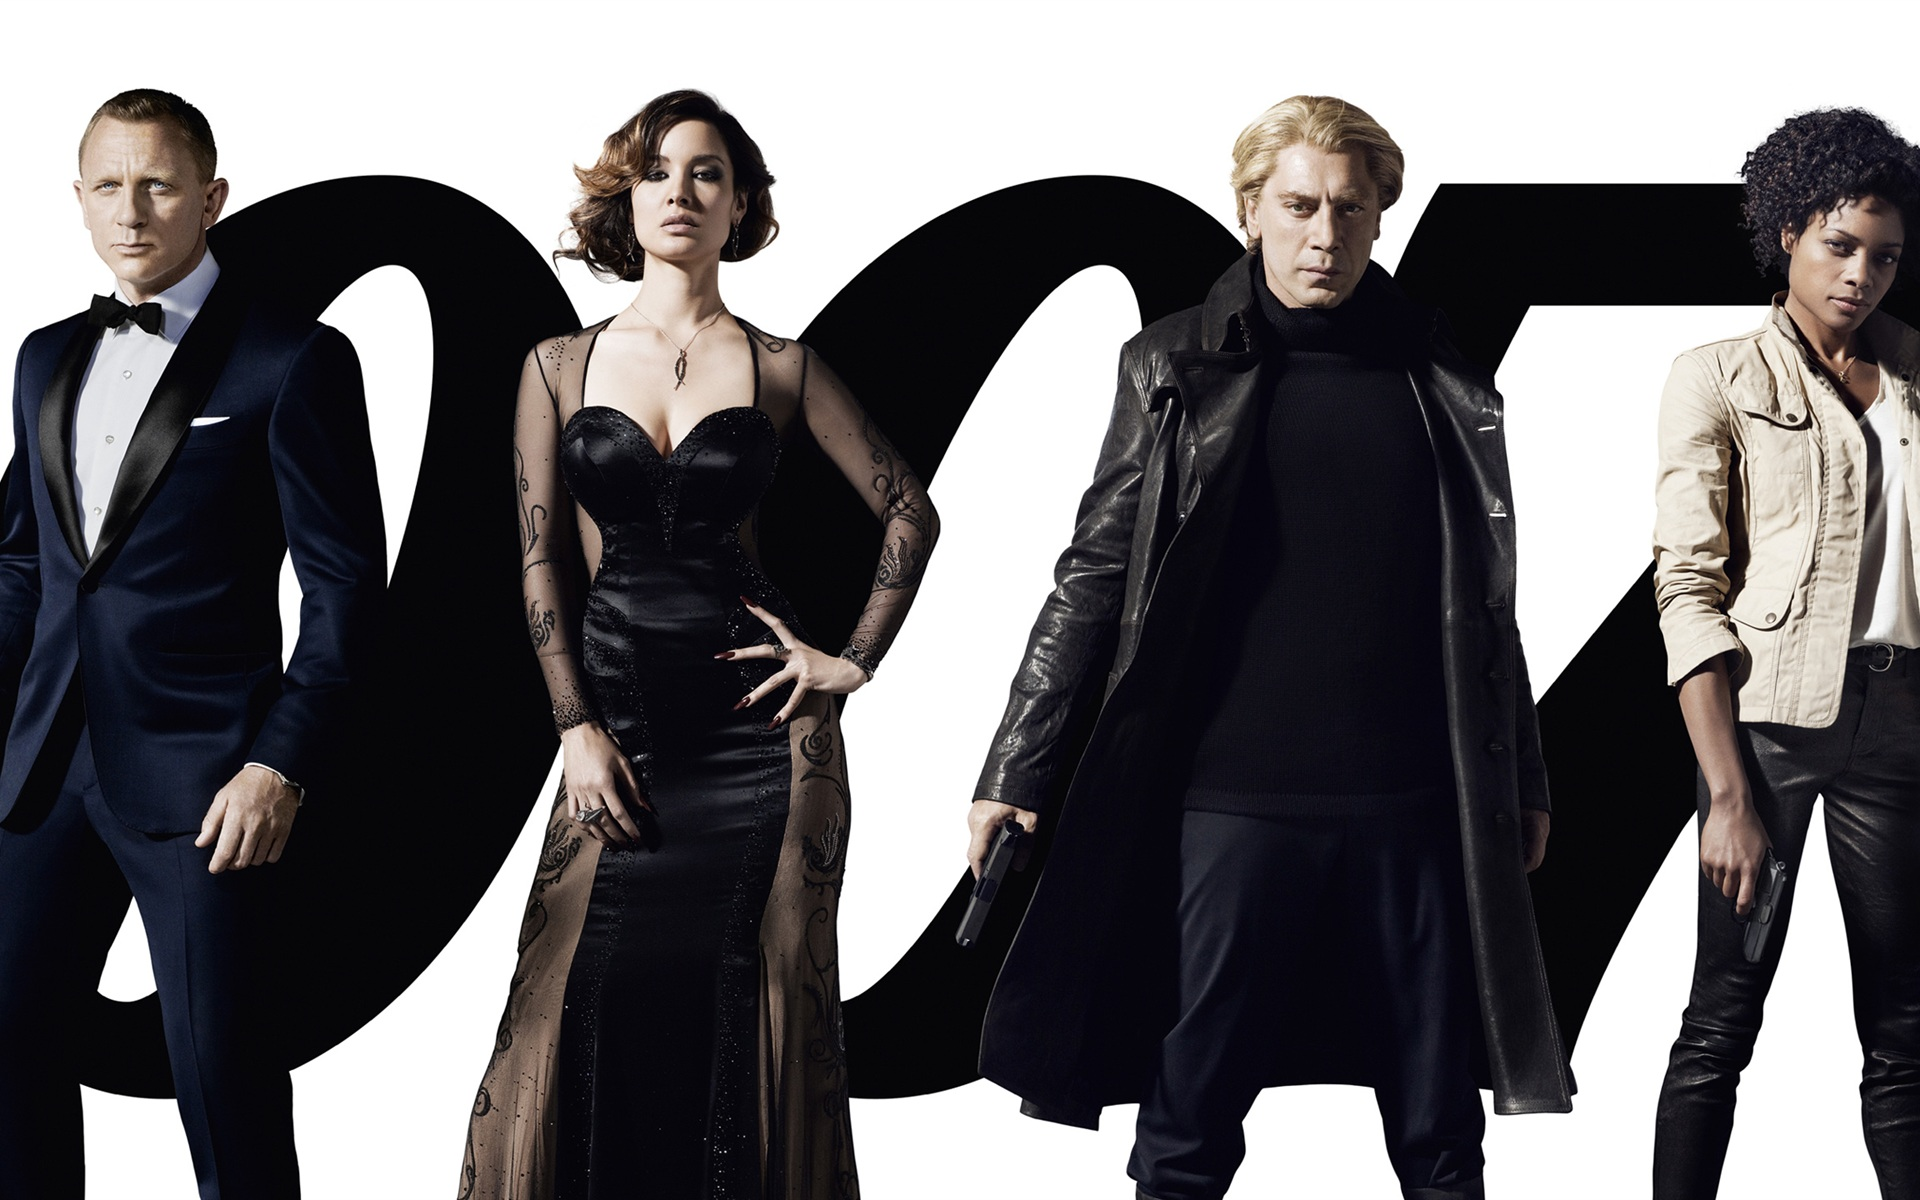 007-Skyfall-movie-HD_1920x1200.jpg